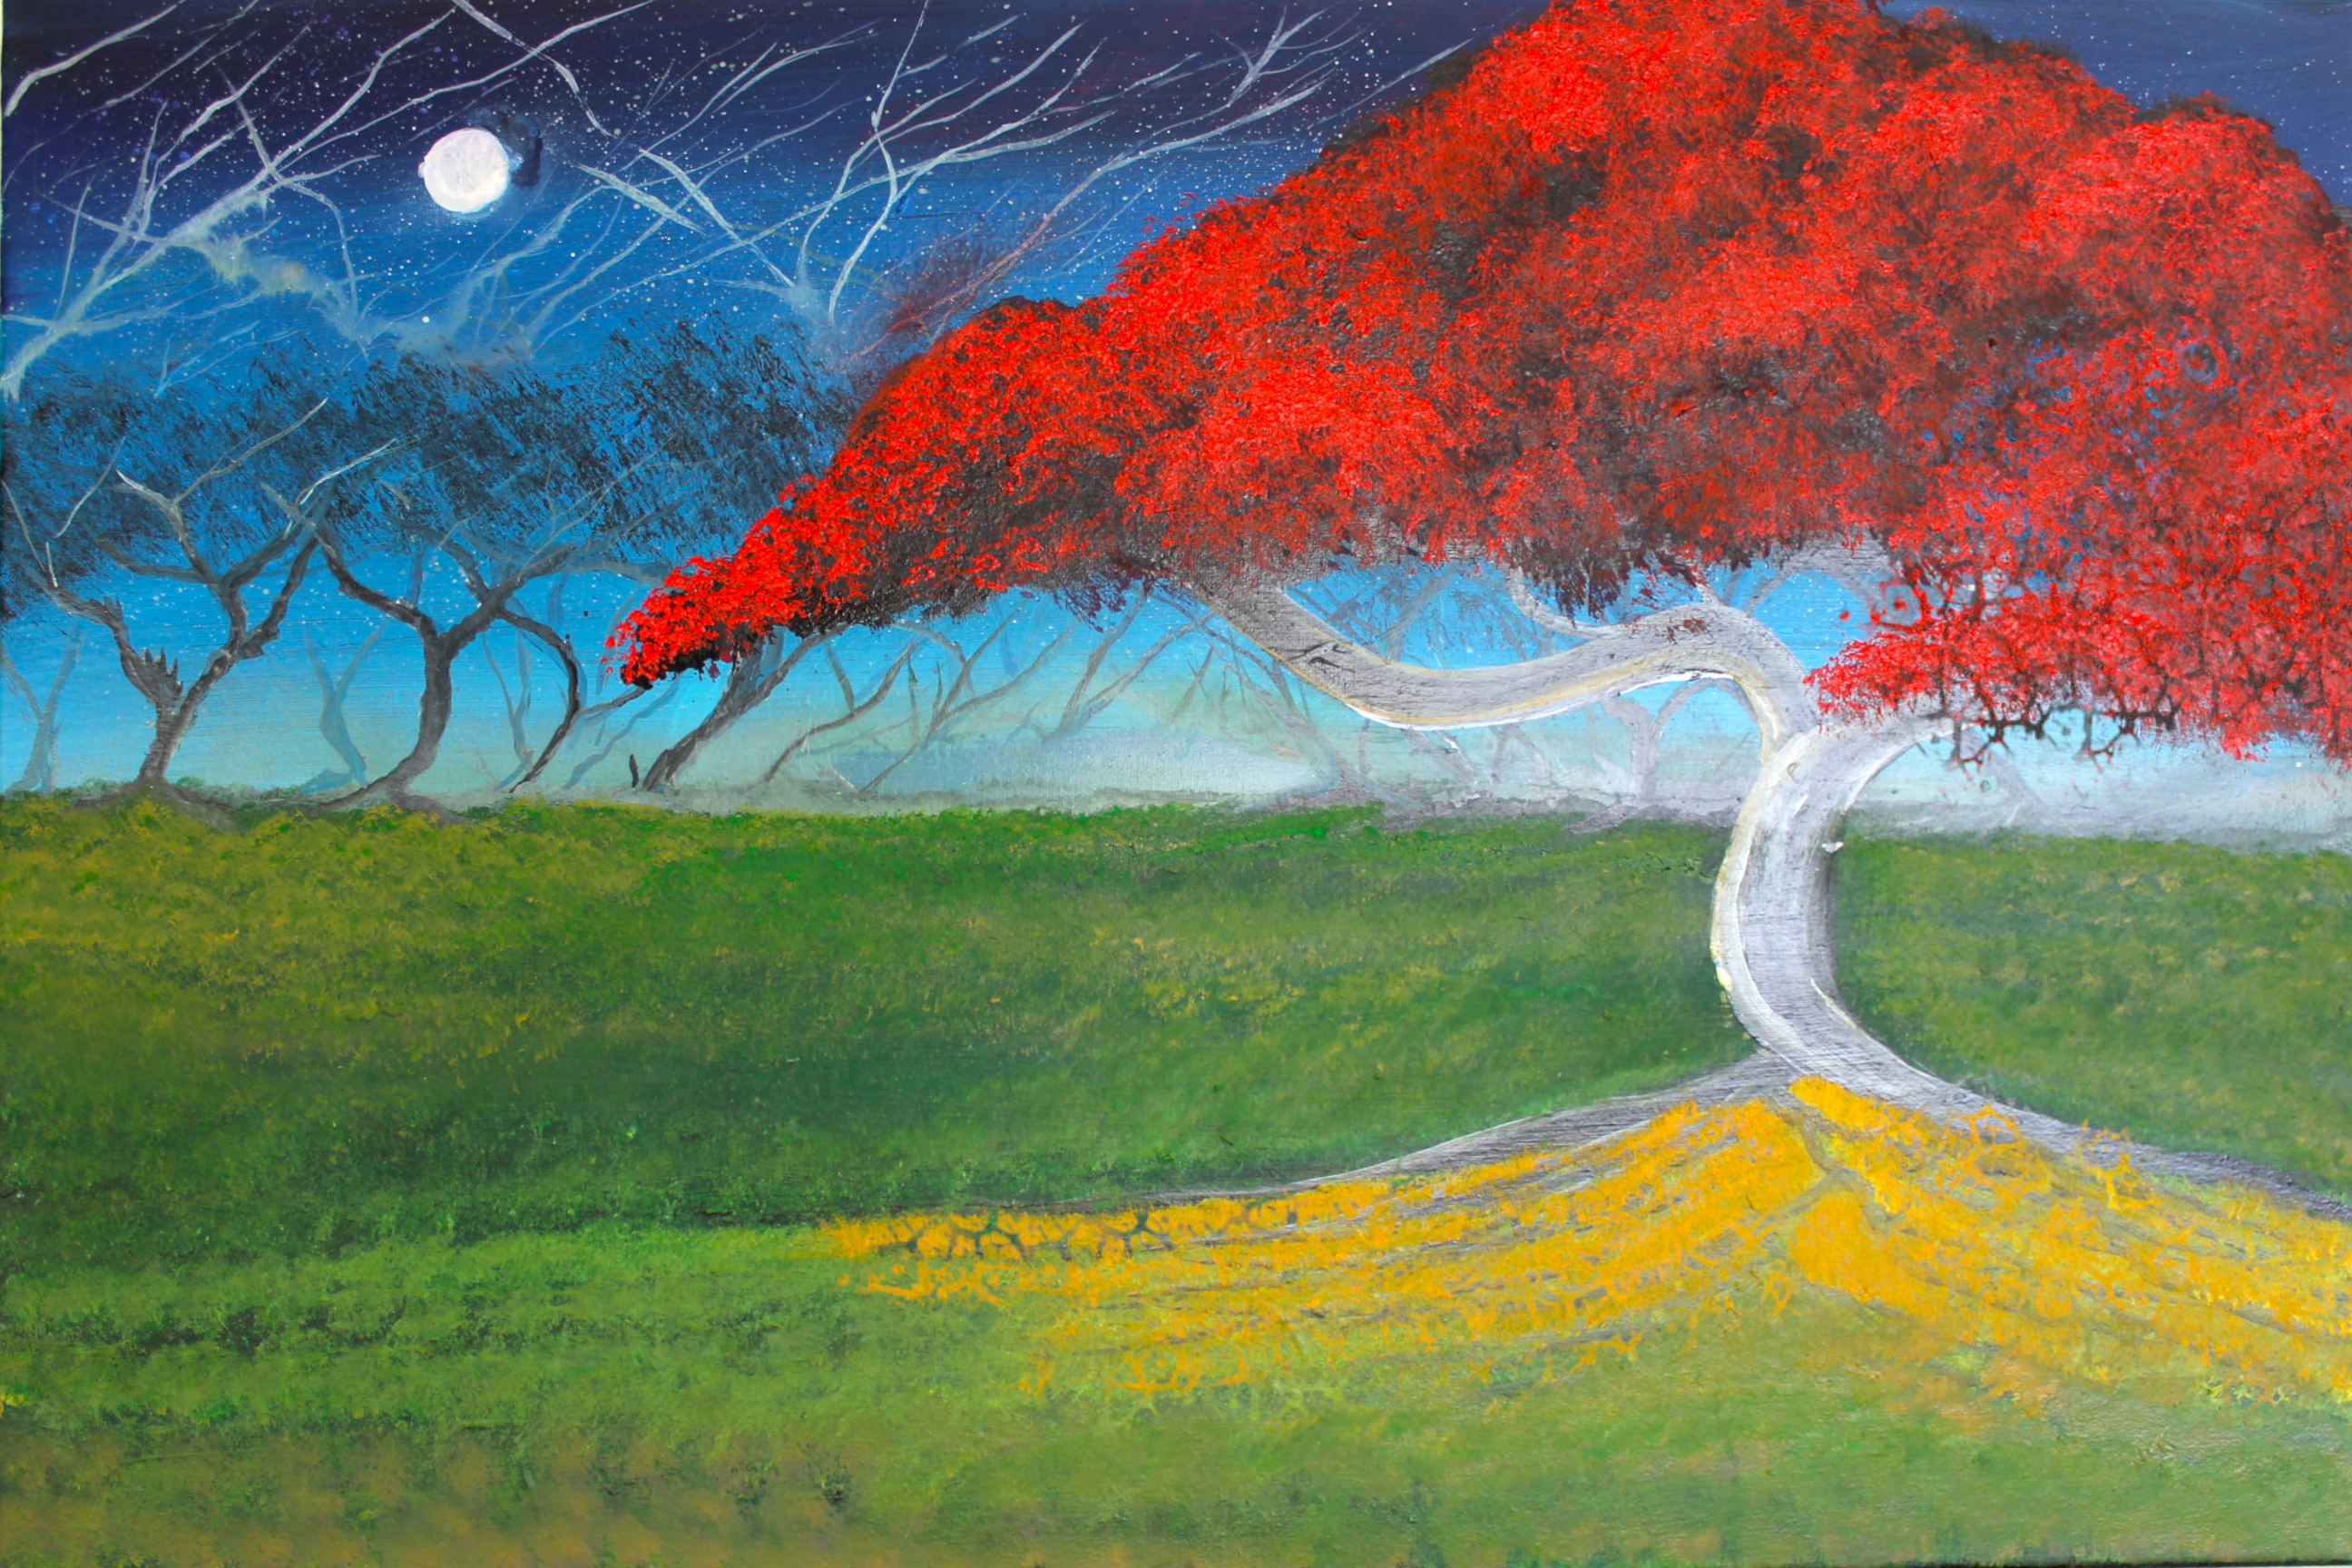 The Red Blossom Tree 2021